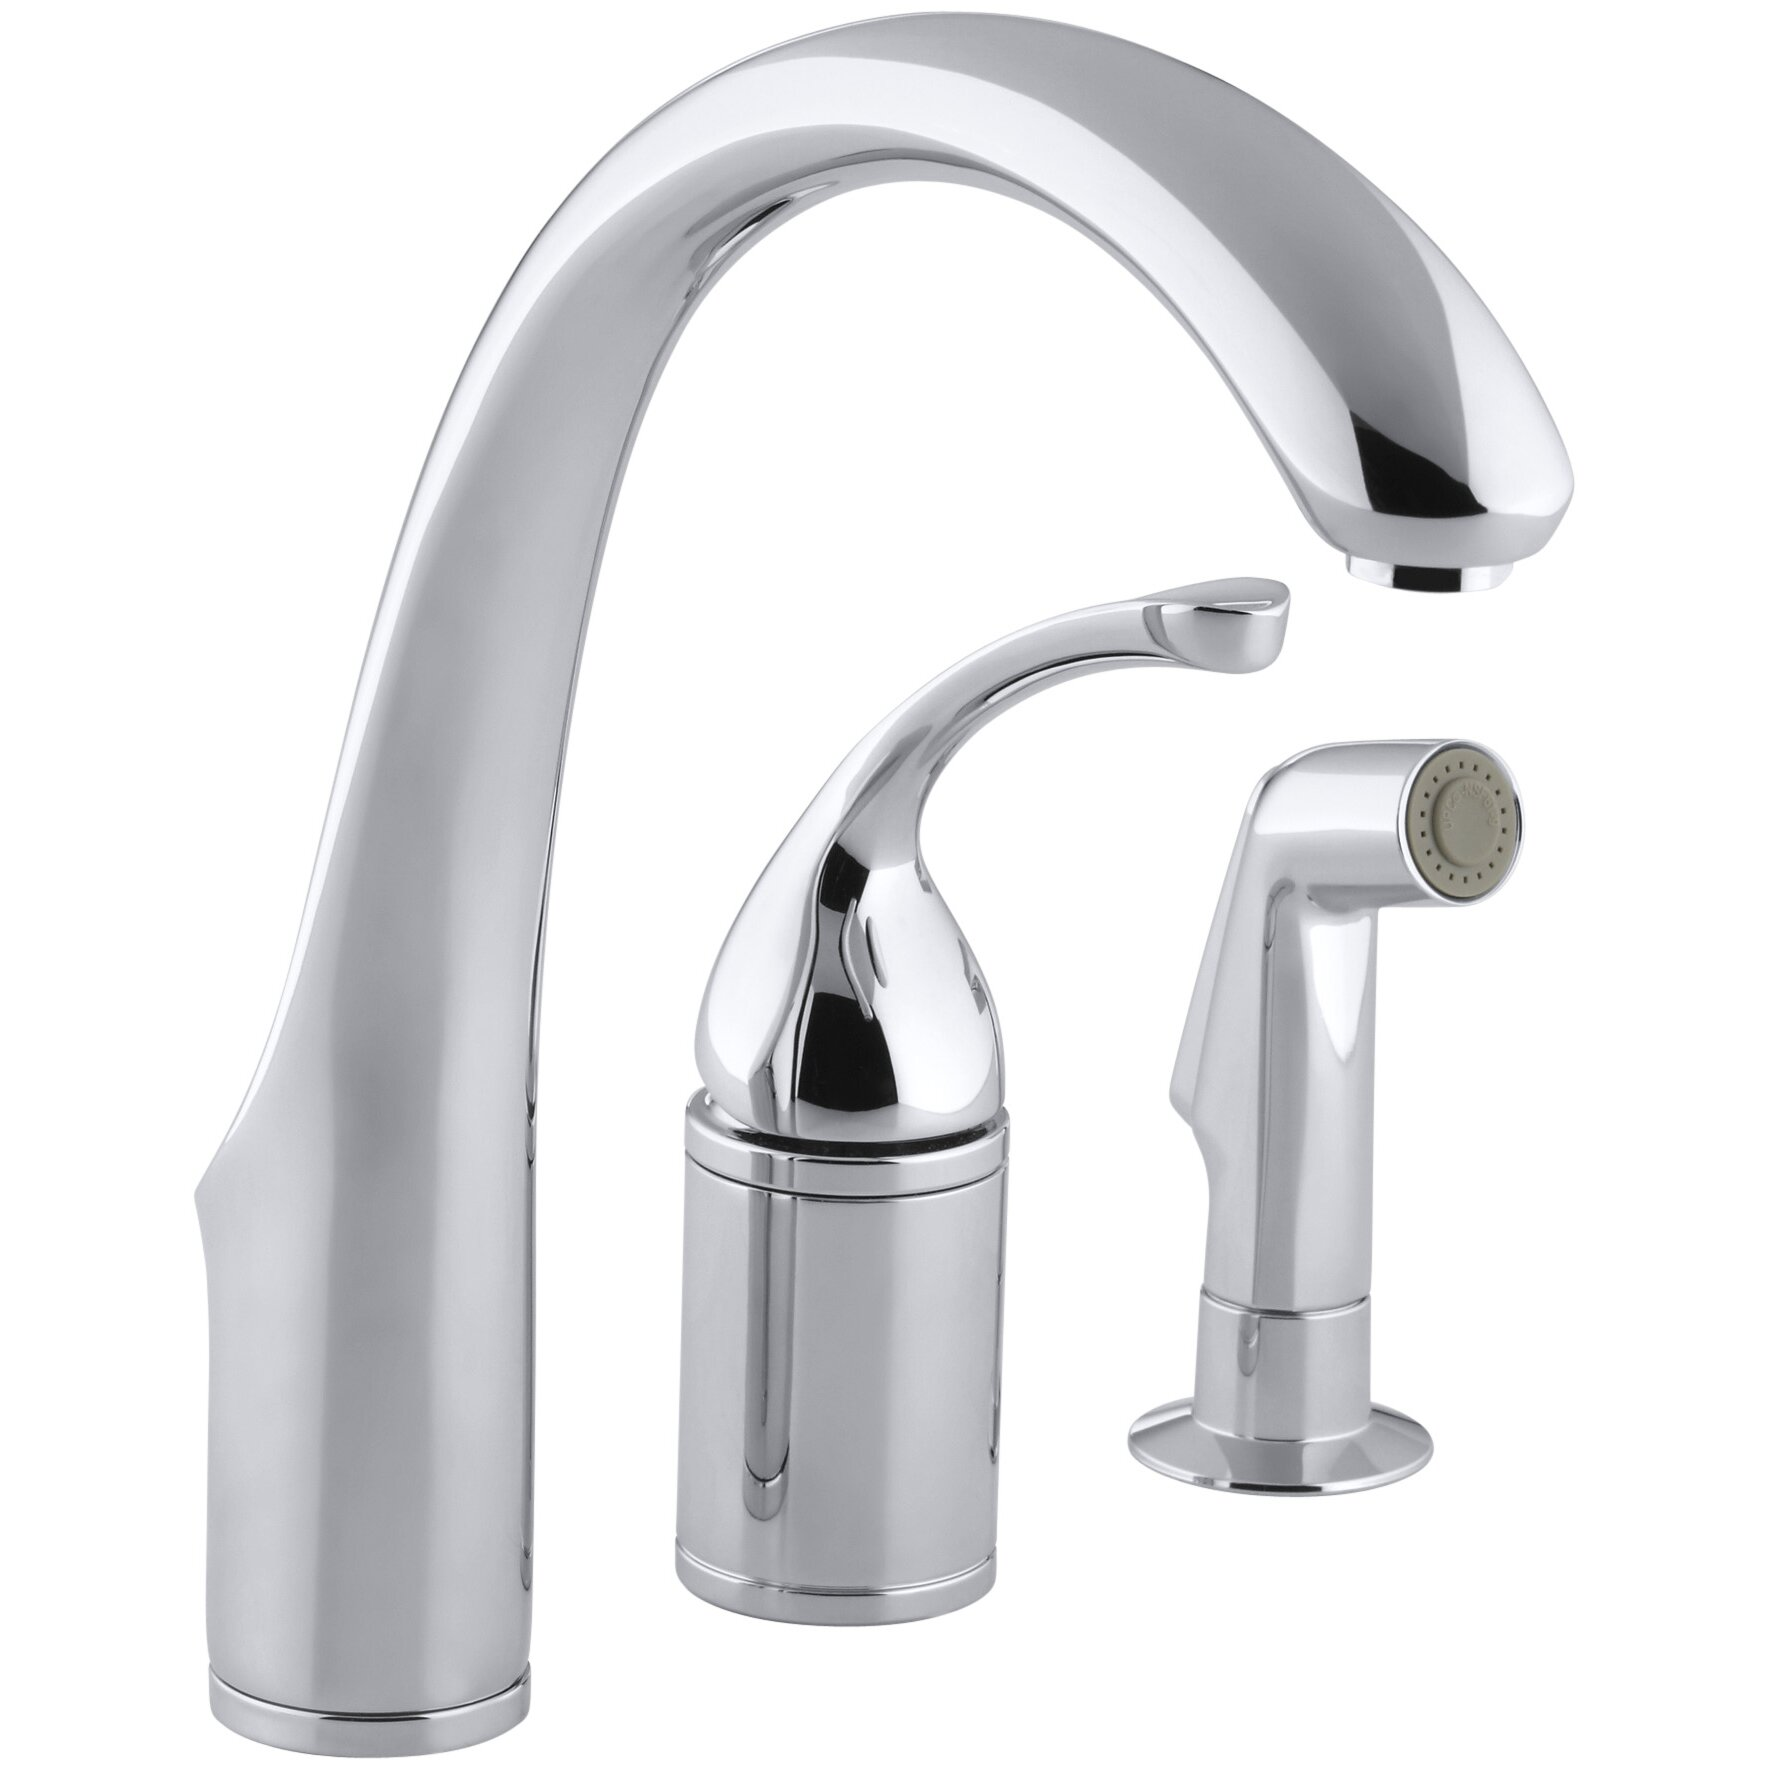 Kohler Fort 233 3 Hole Remote Valve Kitchen Sink Faucet With